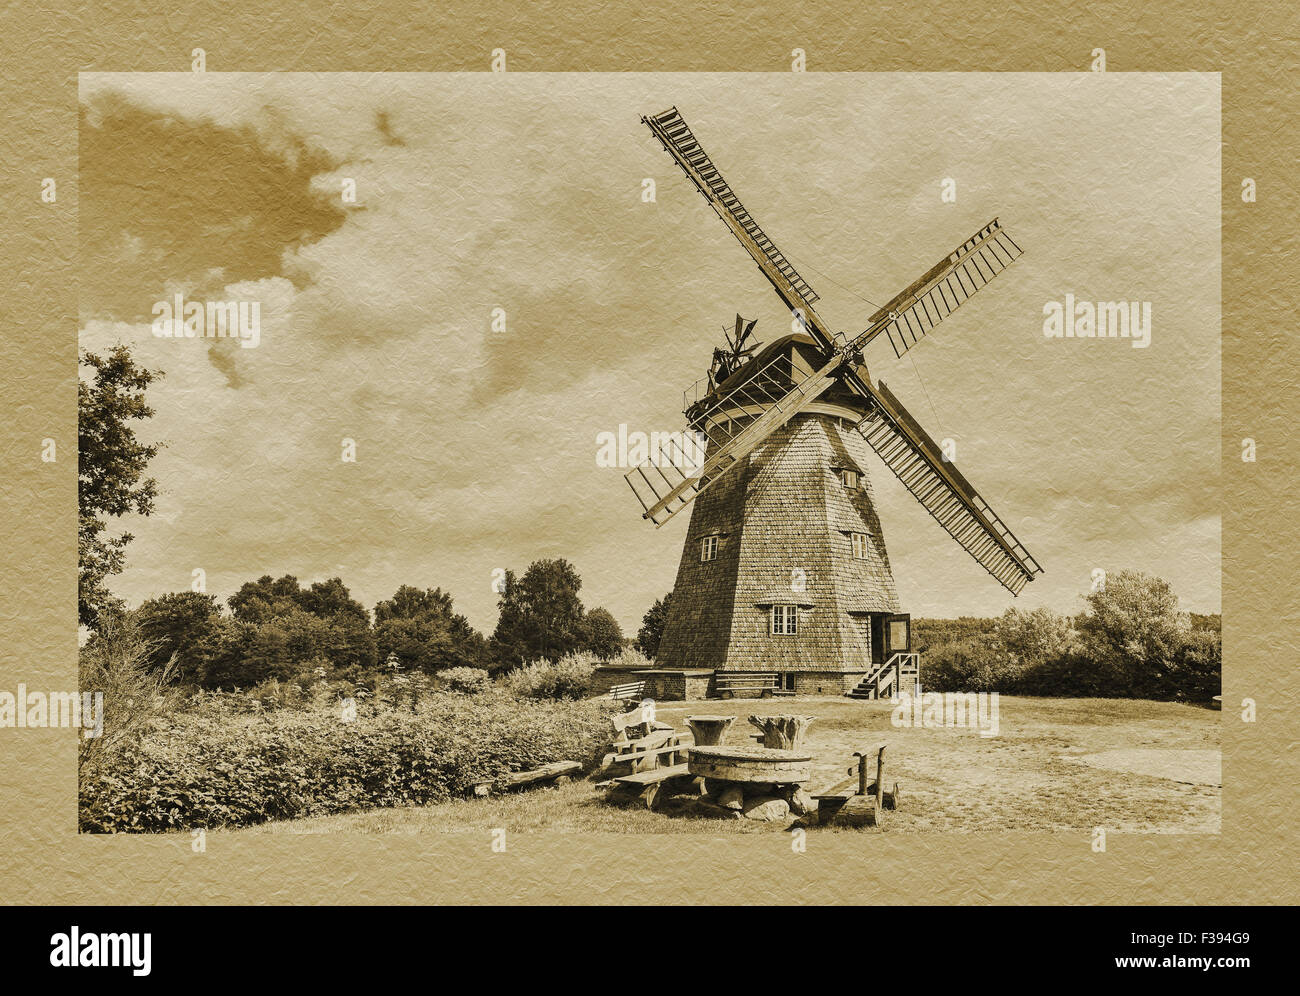 Dutch windmill from the 19th century, Benz, Usedom Island, Mecklenburg-Western Pomerania, Germany, Europe - Stock Image